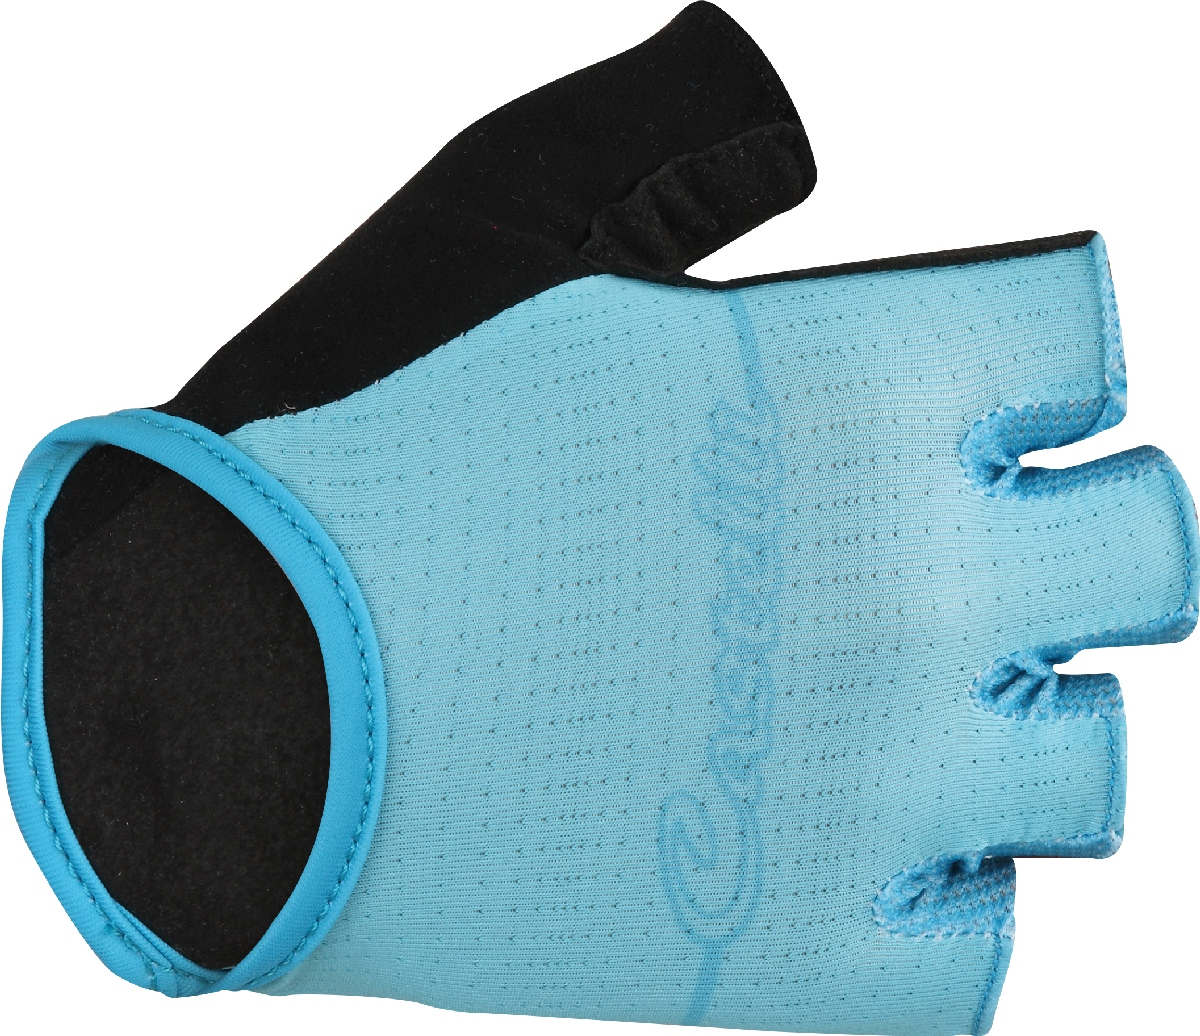 Castelli Dolcissima Cycling Glove Women's Size M AtollBlue PaleSky U.S.A. & Canada